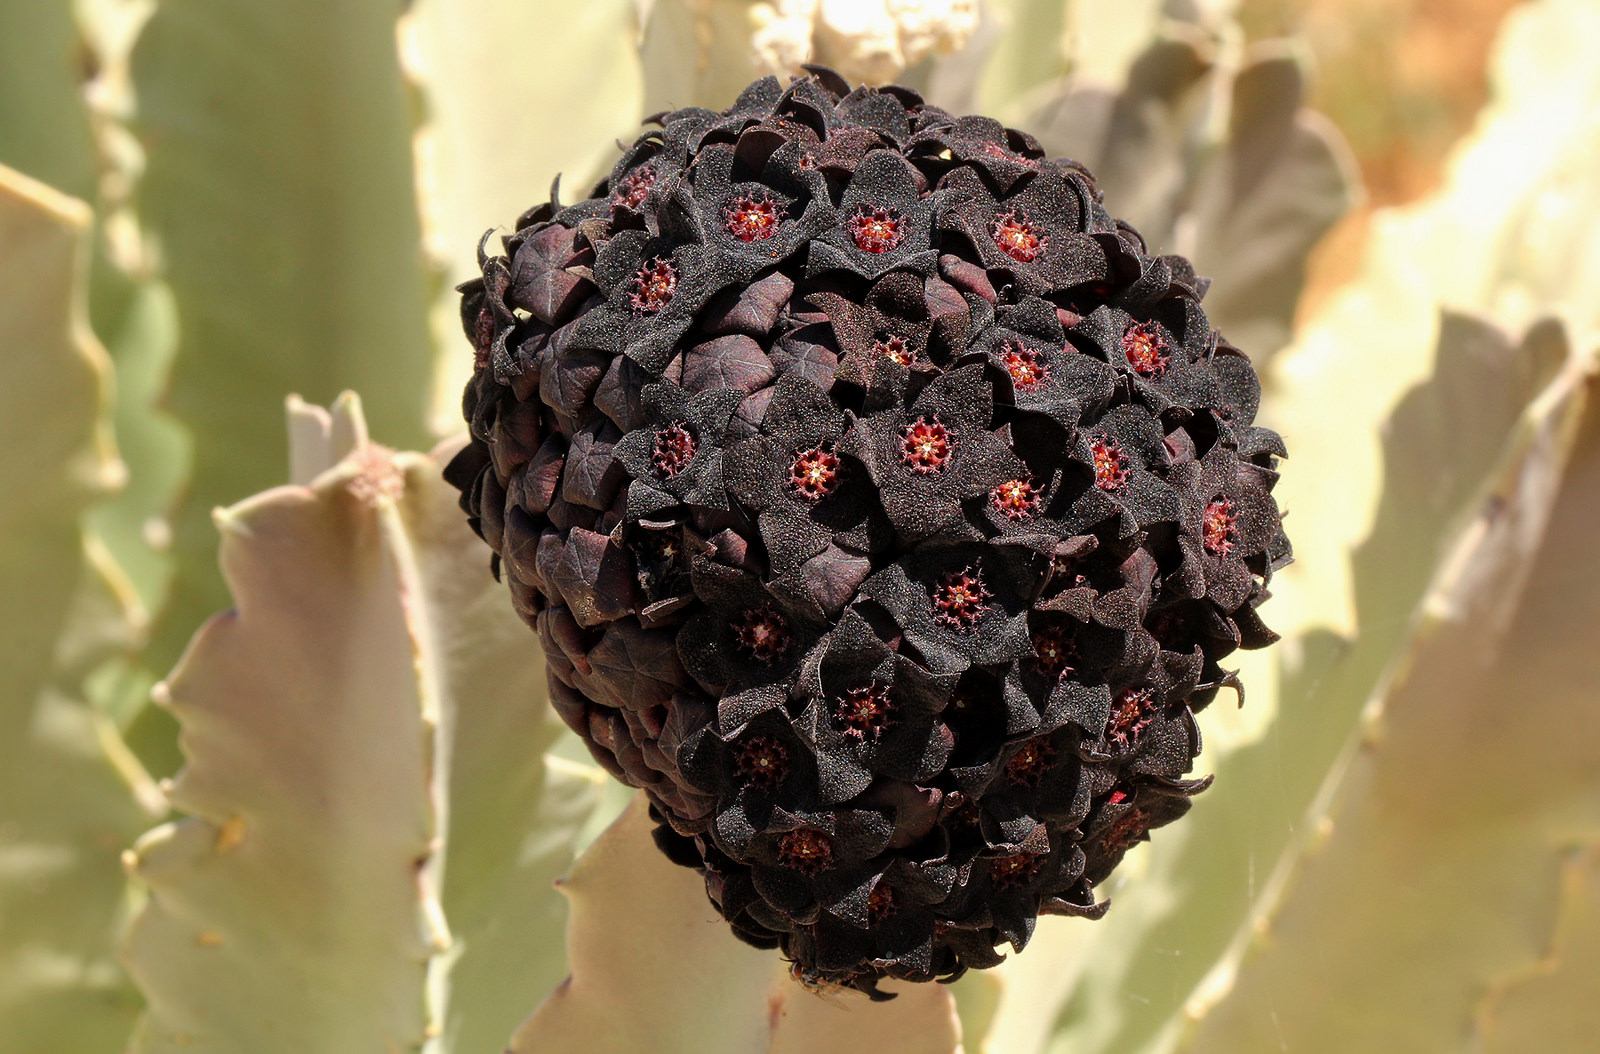 The inflorescence of Caralluma retrospiciens